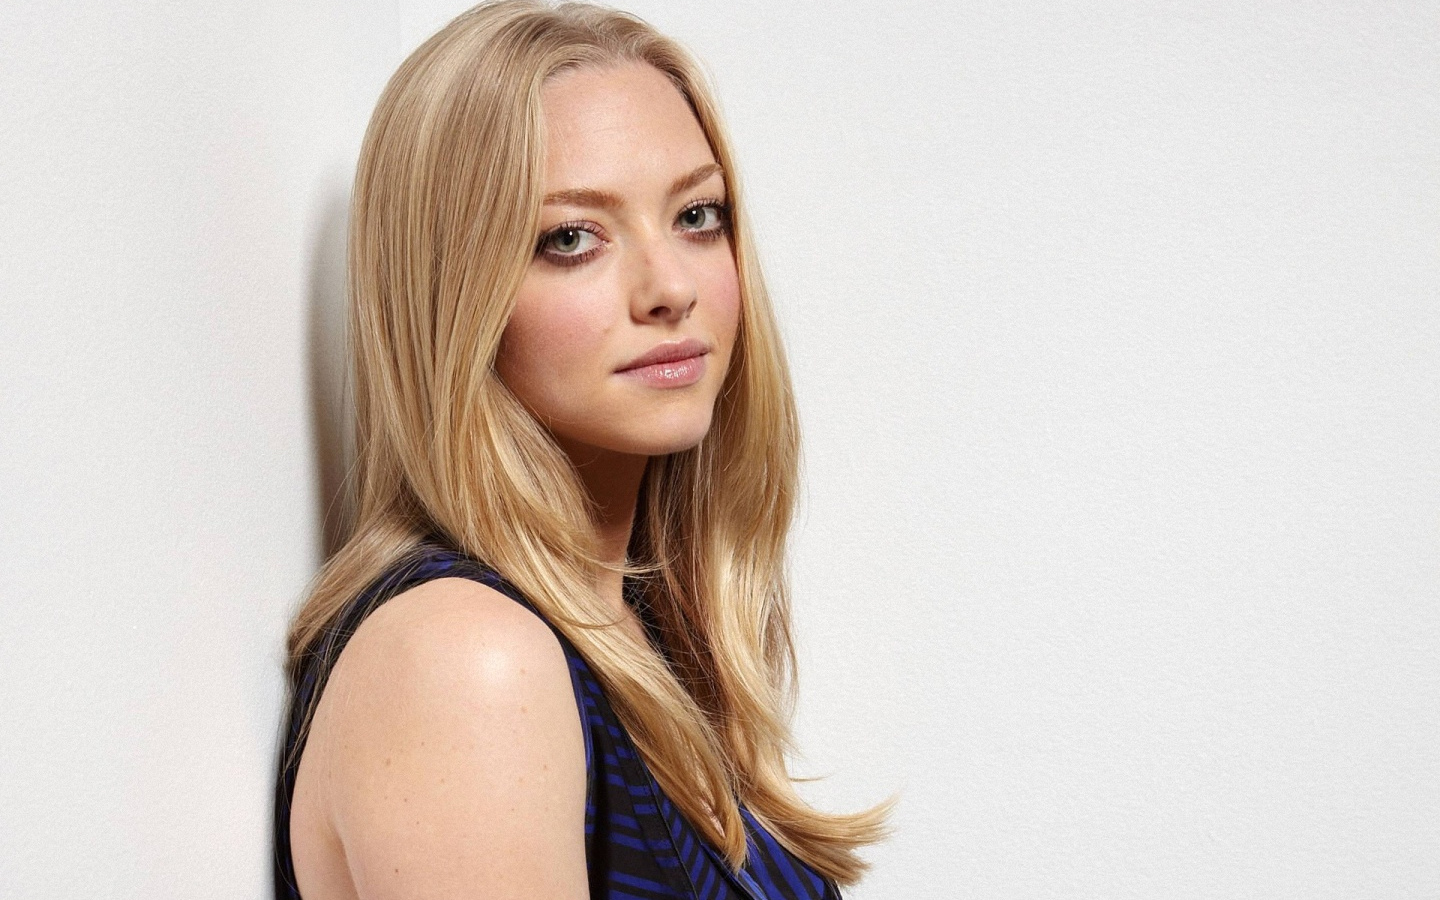 dreamology amanda seyfried hd - photo #40